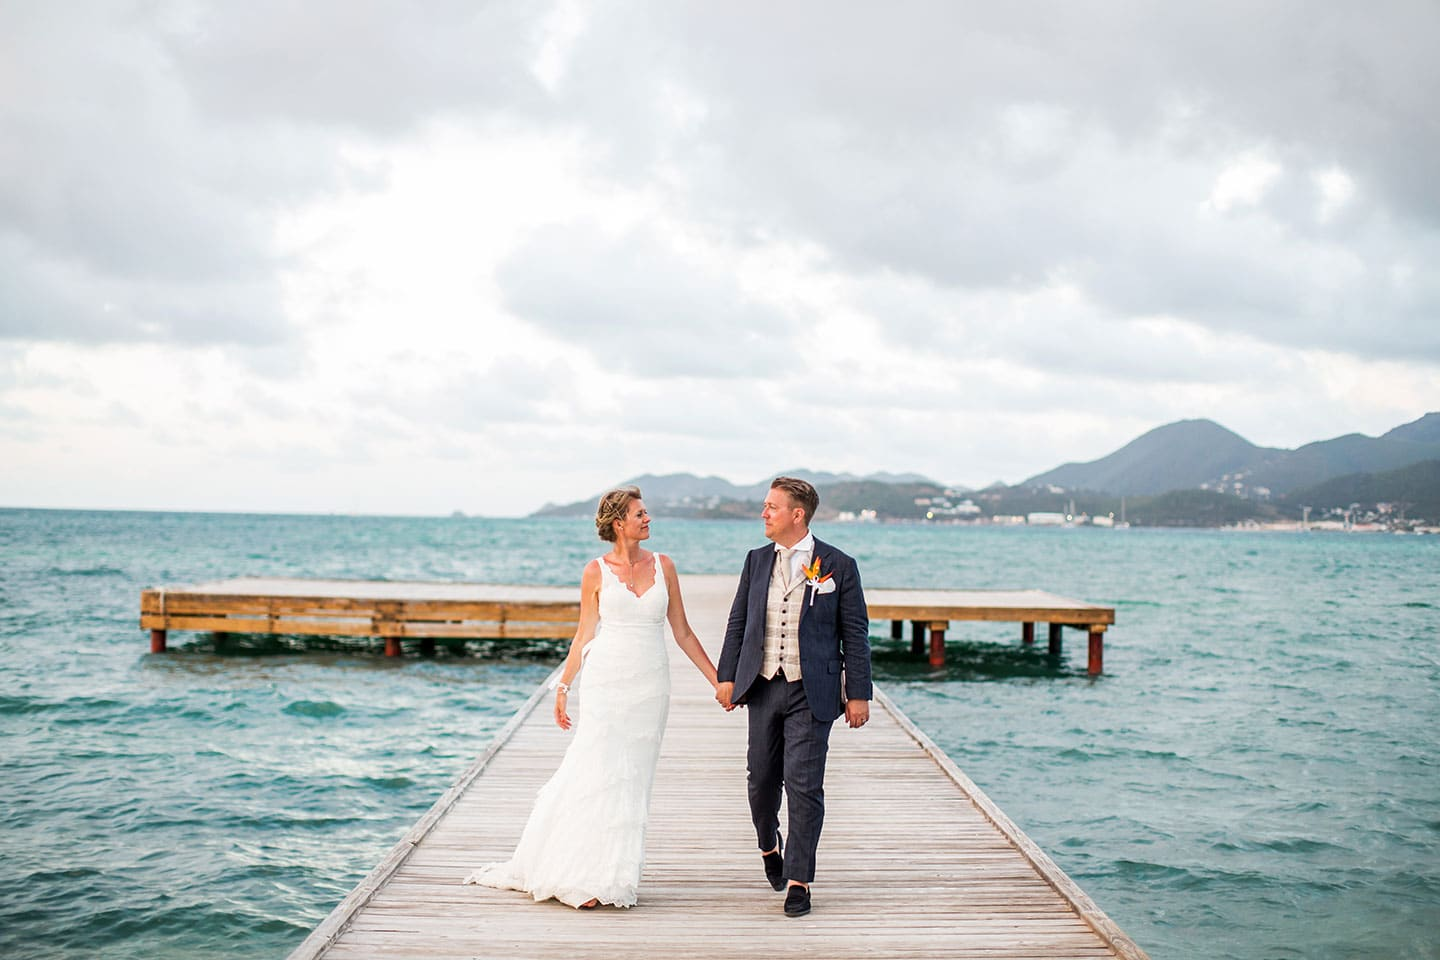 Destination wedding St. Maarten Caribbean